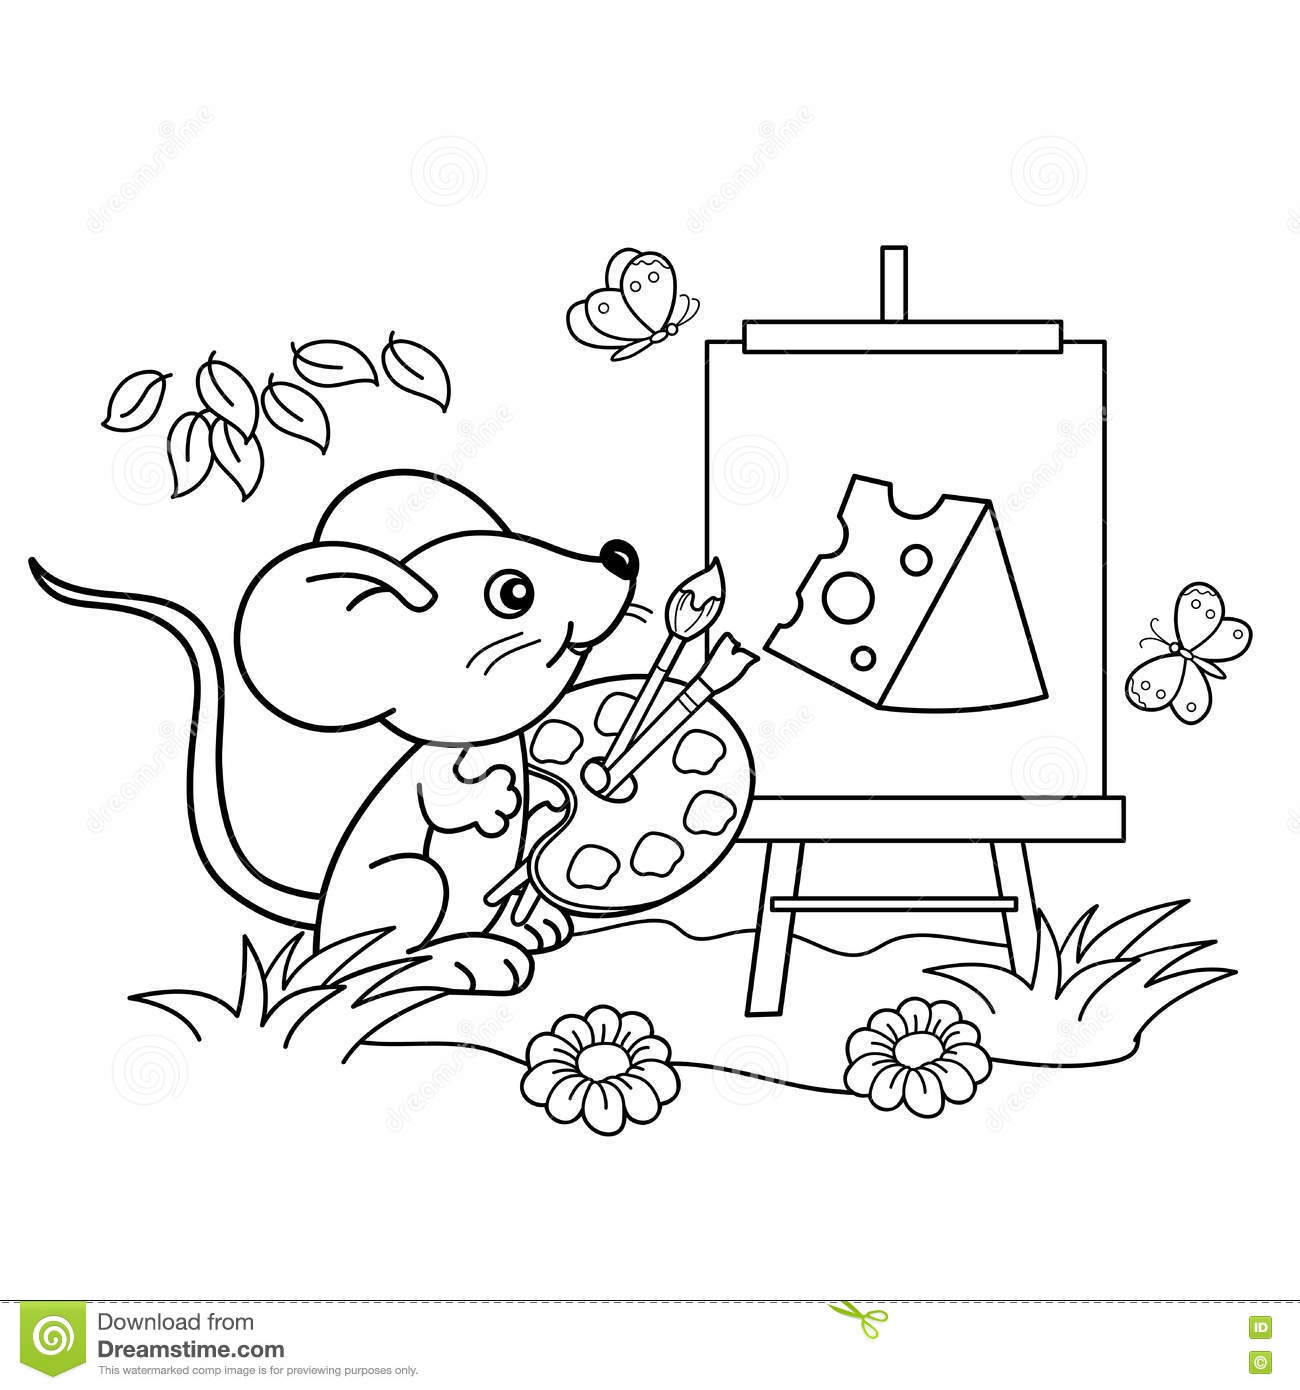 Online coloring with paint brush - Cartoon Paint Brushes Coloring Page Coloring Page Outline Cartoon Little Mouse Picture Cheese Brush Paints